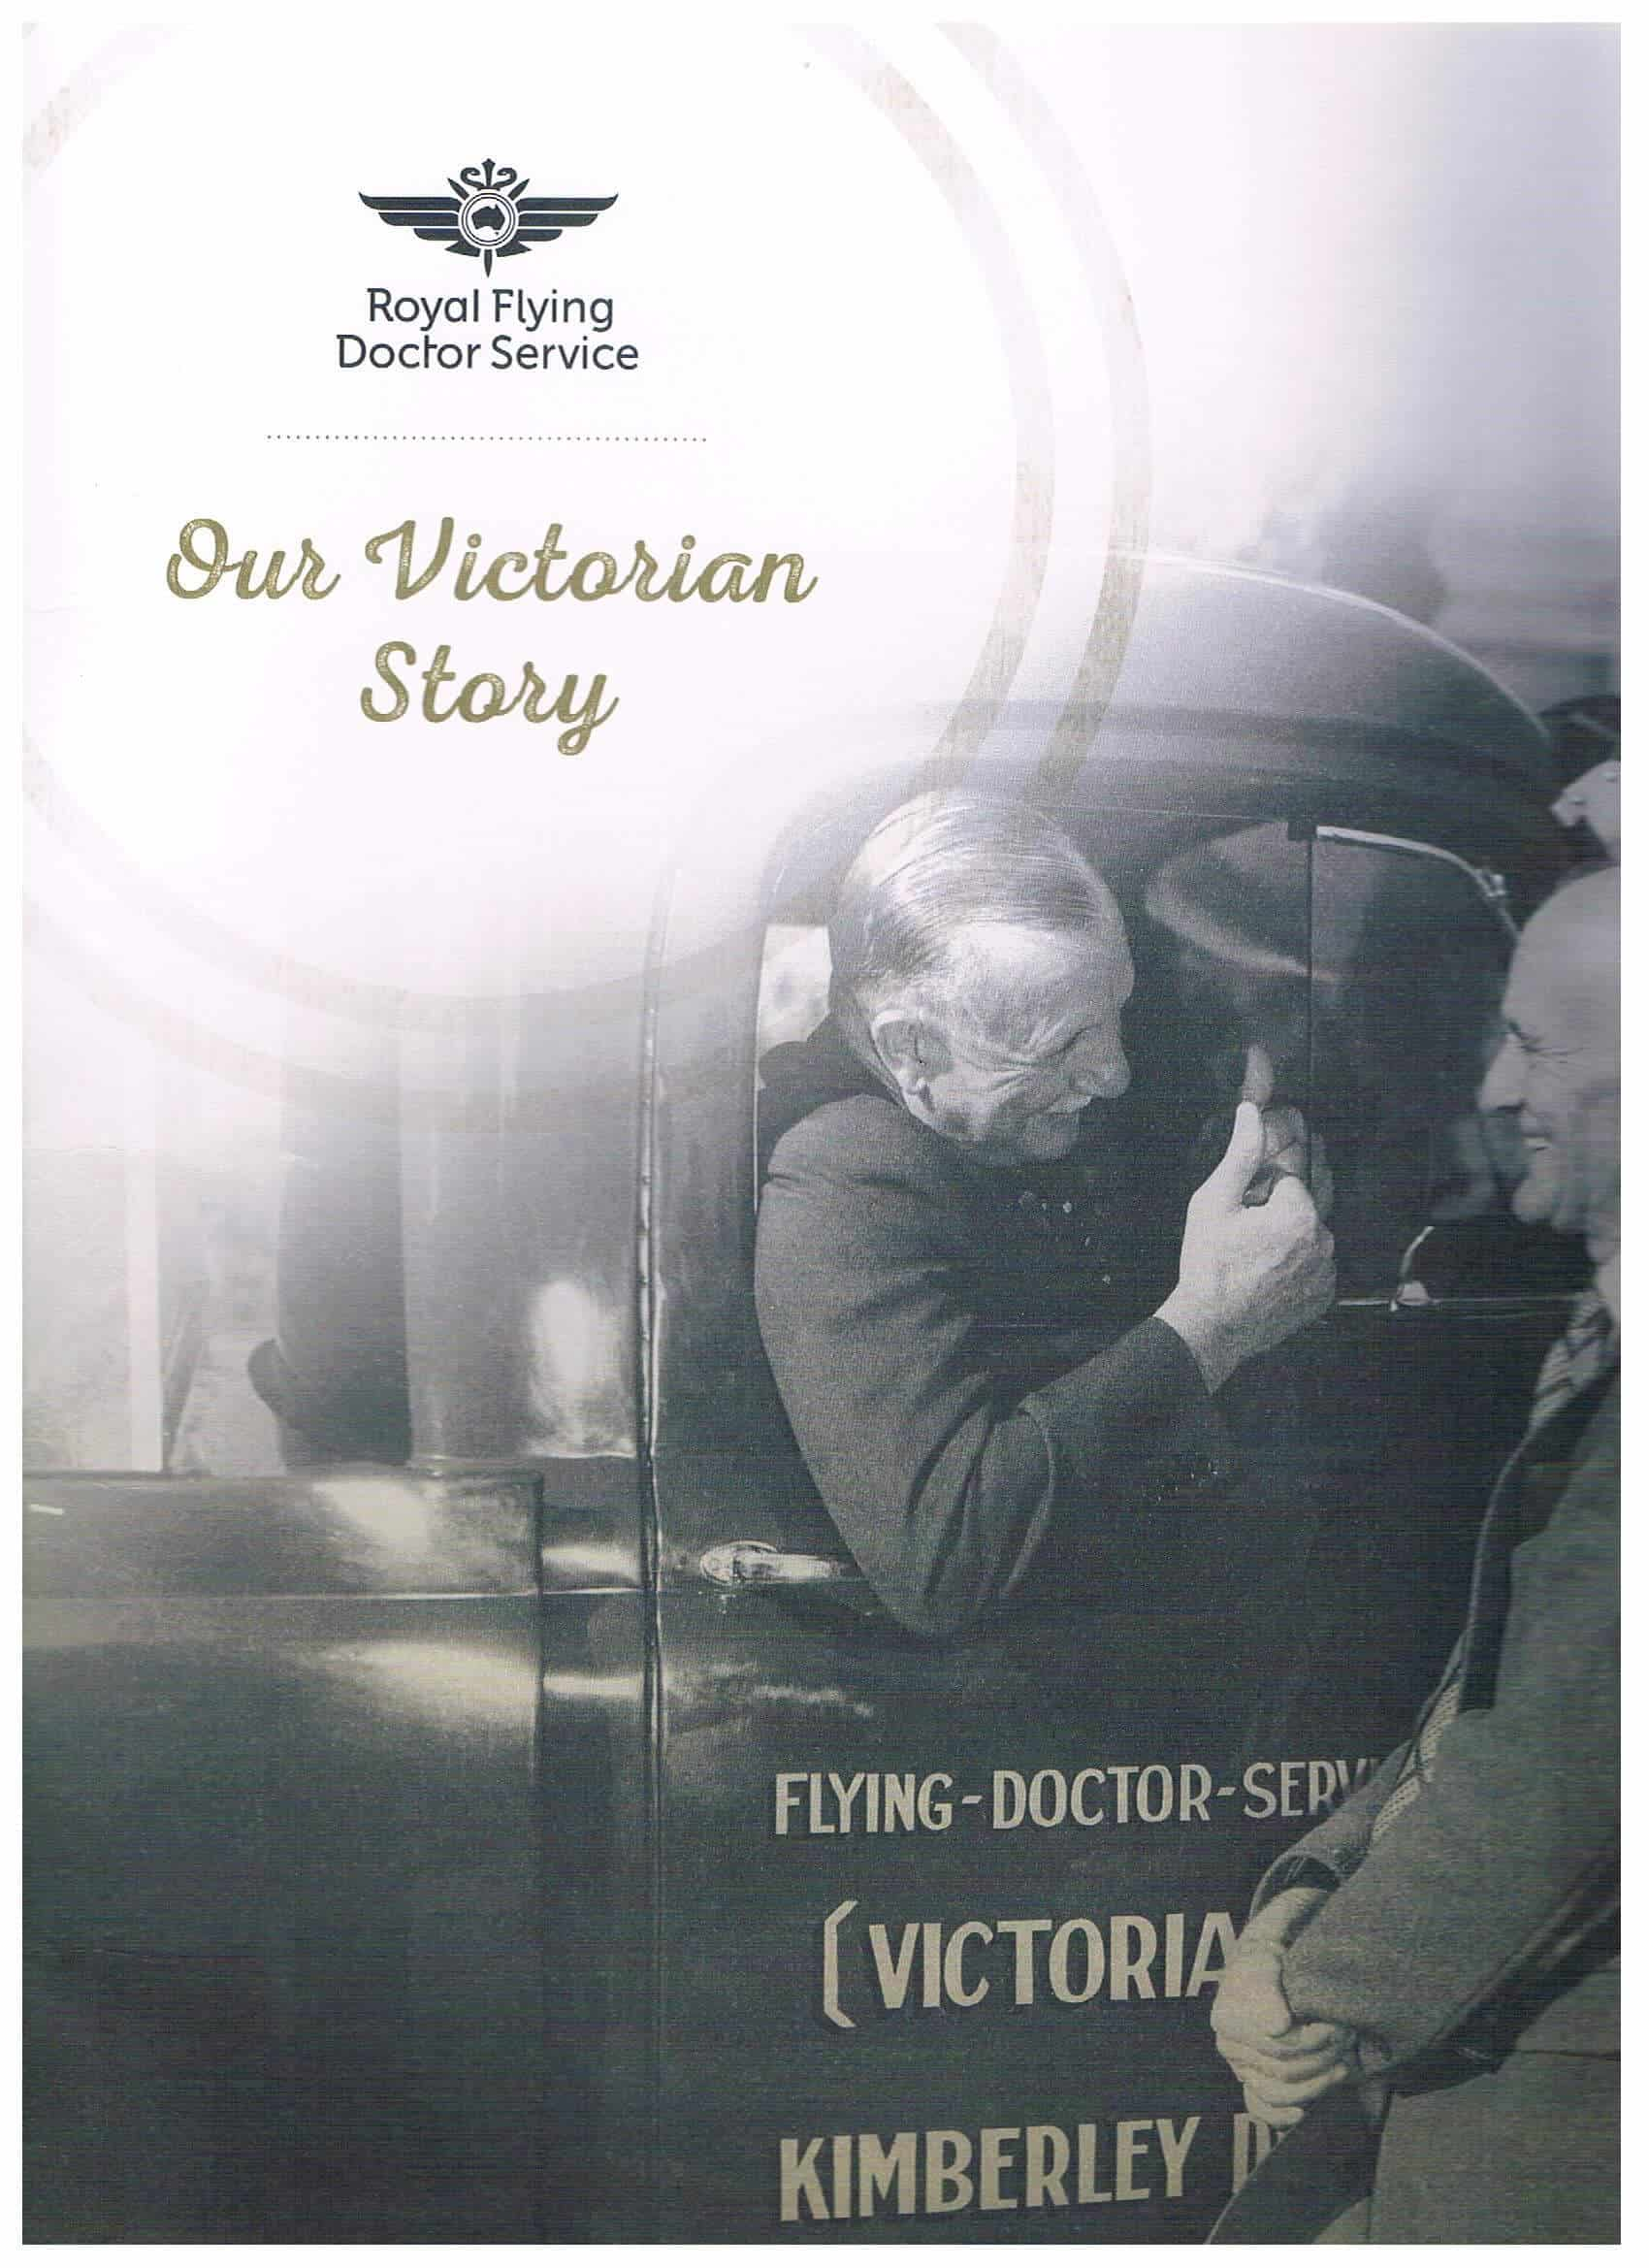 Royal Flying Doctor Service Our Victorian Story cover page